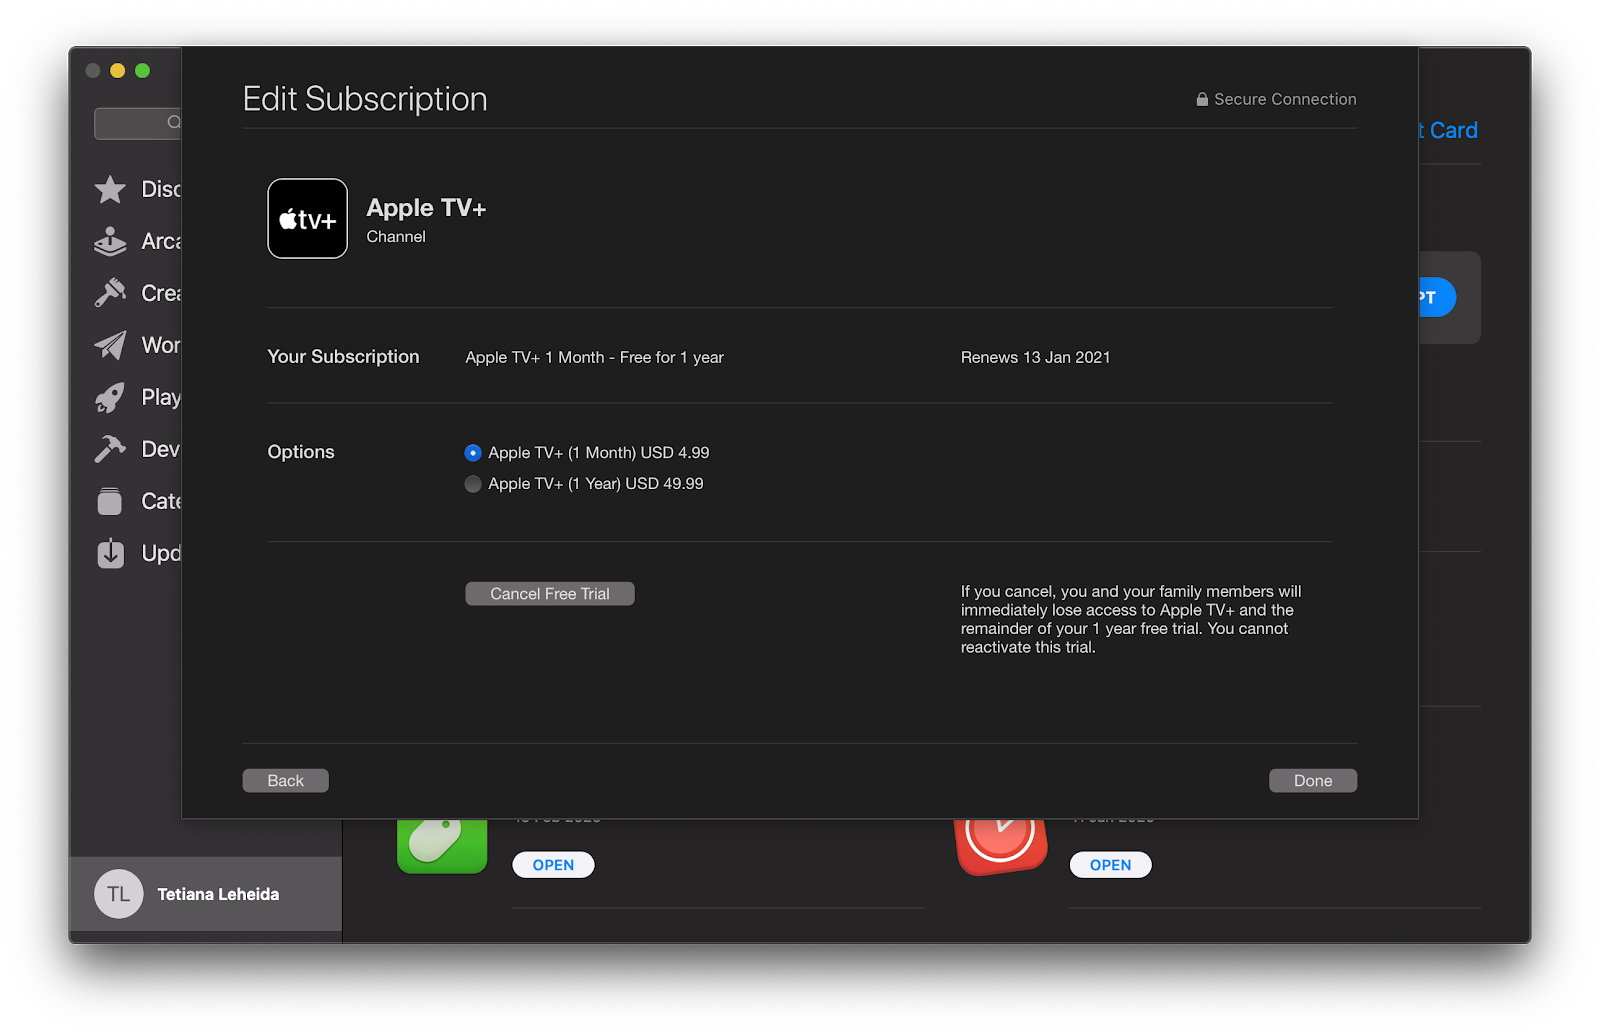 Apple TV+ subscription status